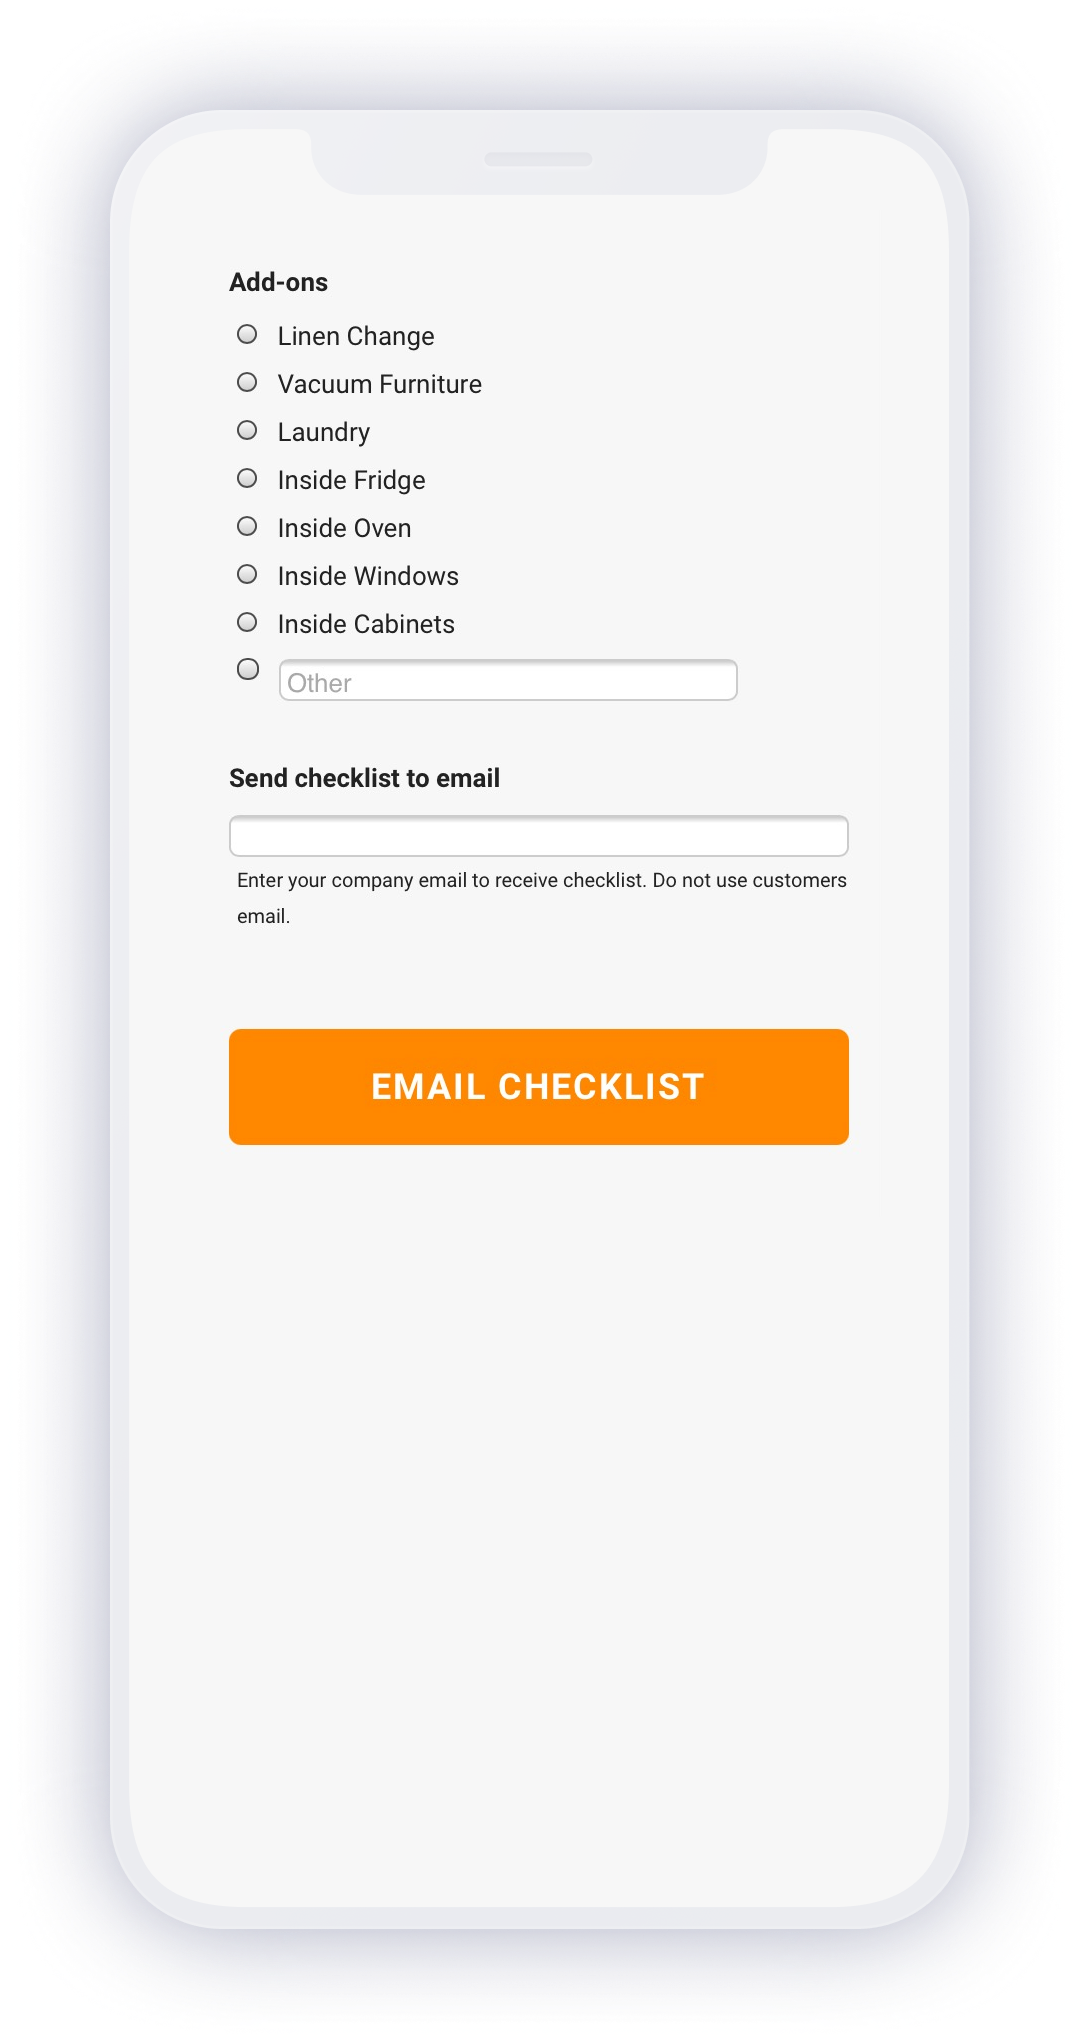 House Cleaning Checklist App Email